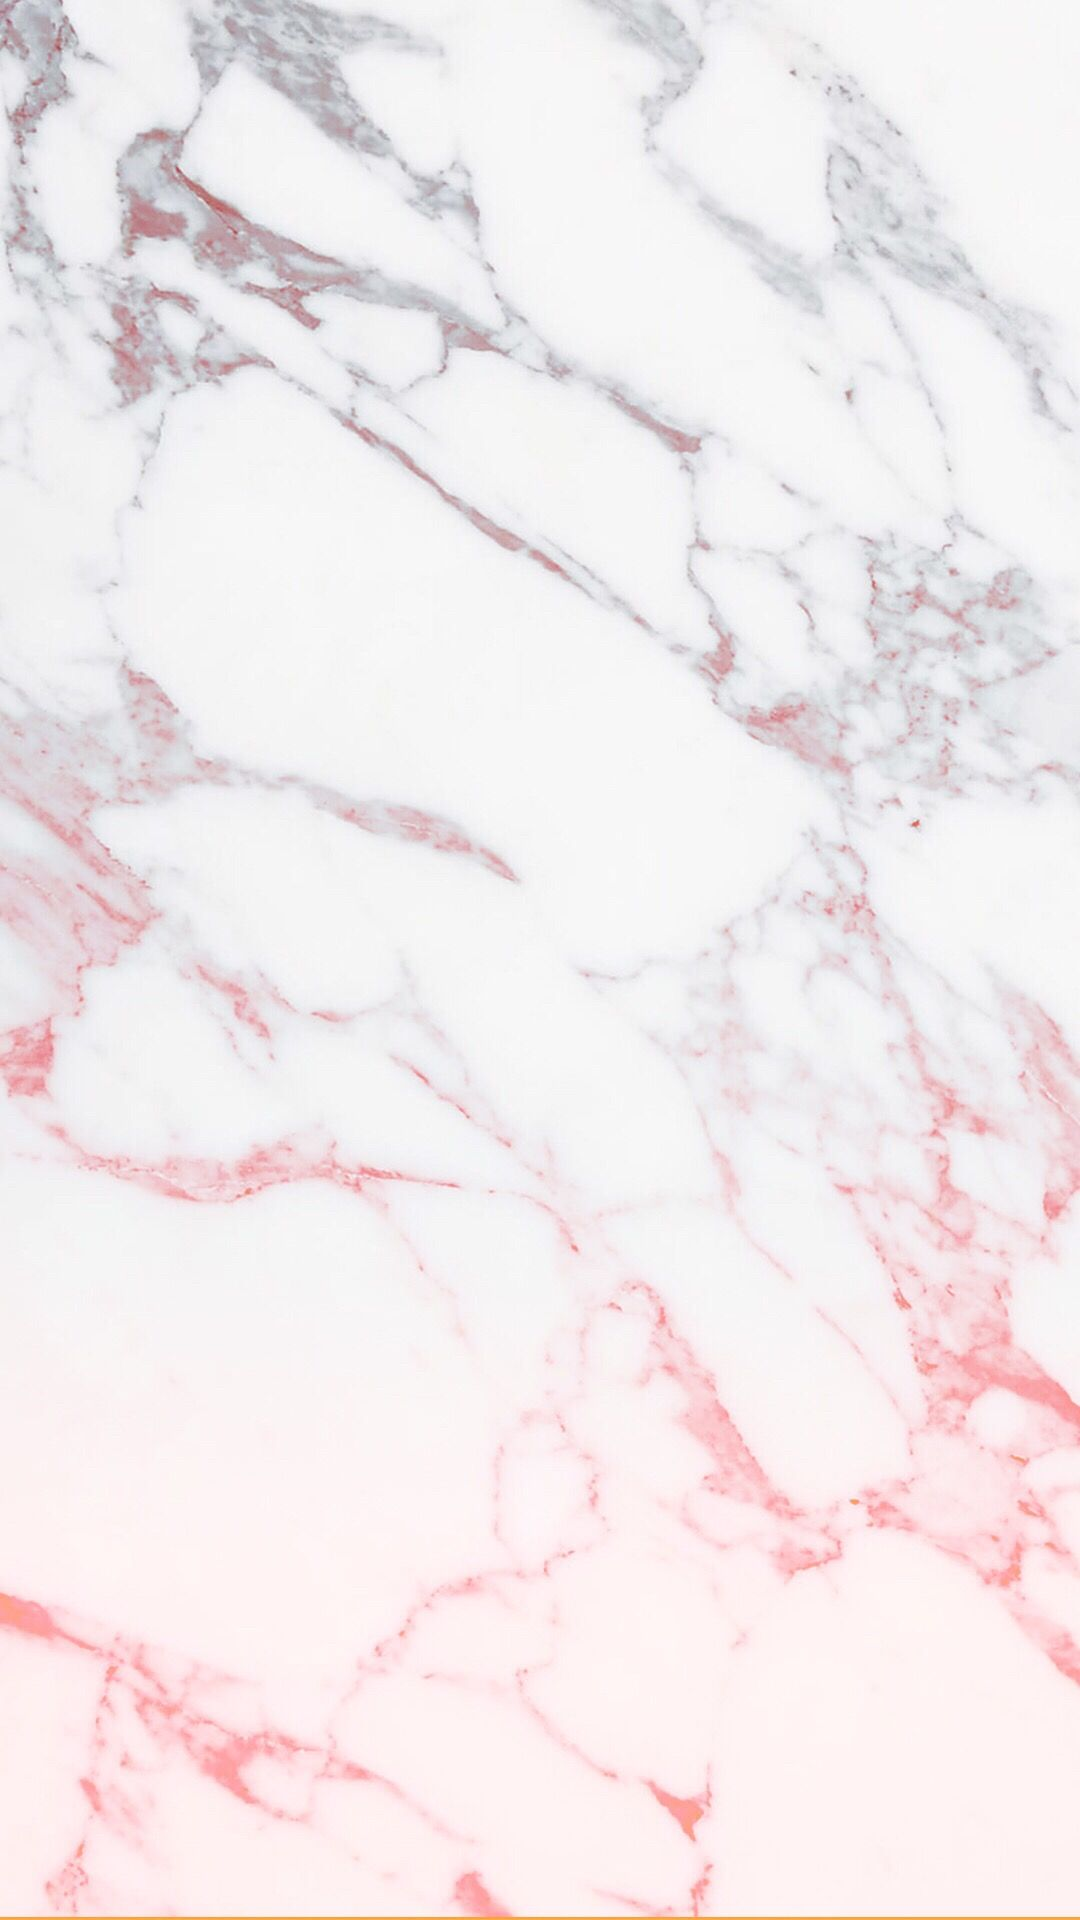 Wallpaper Backgrounds Iphone Marble Hd Girly Wallpapers For Soft Summer